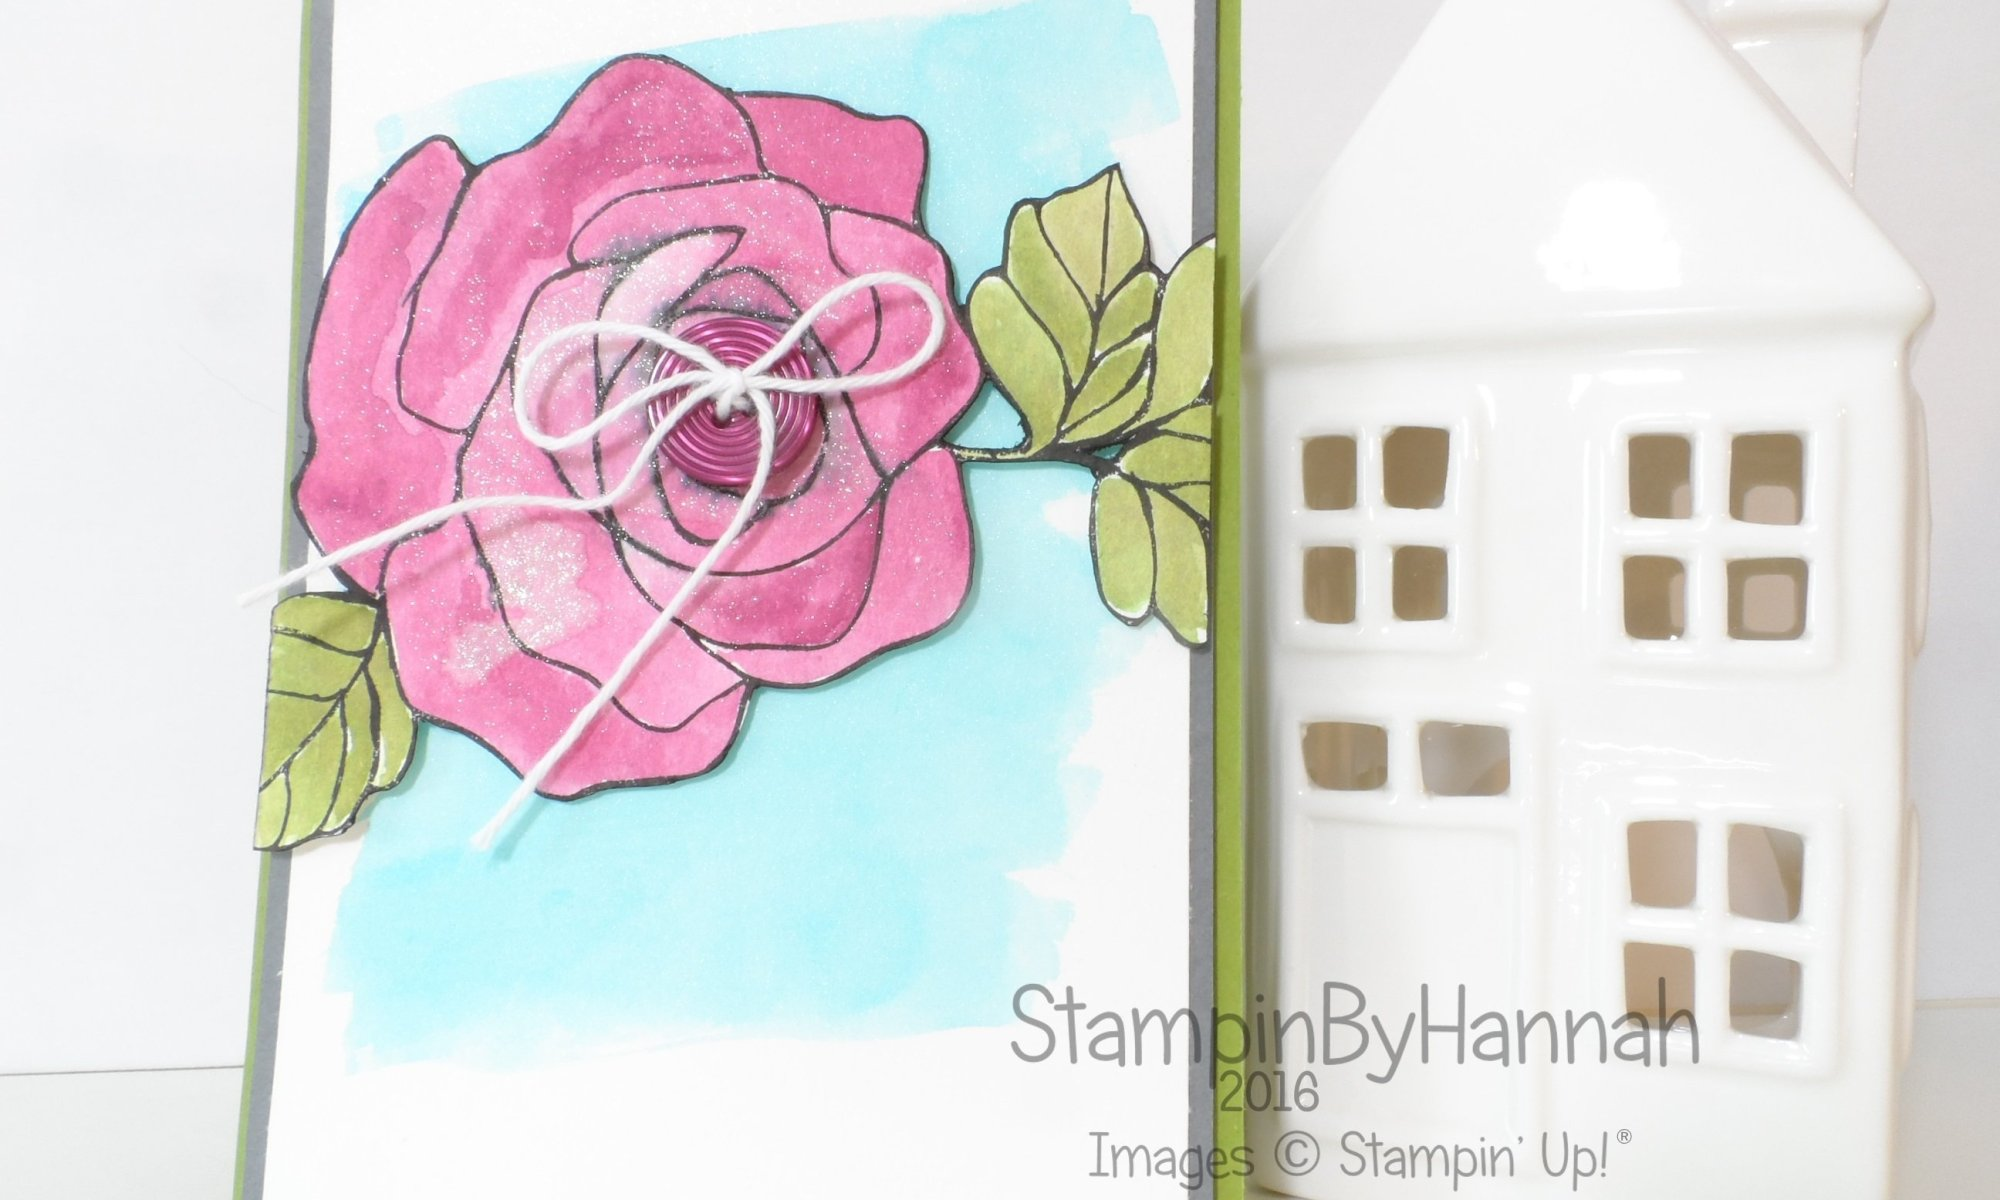 Stampin' Up! UK Rose Wonder Shimmer wink of stella